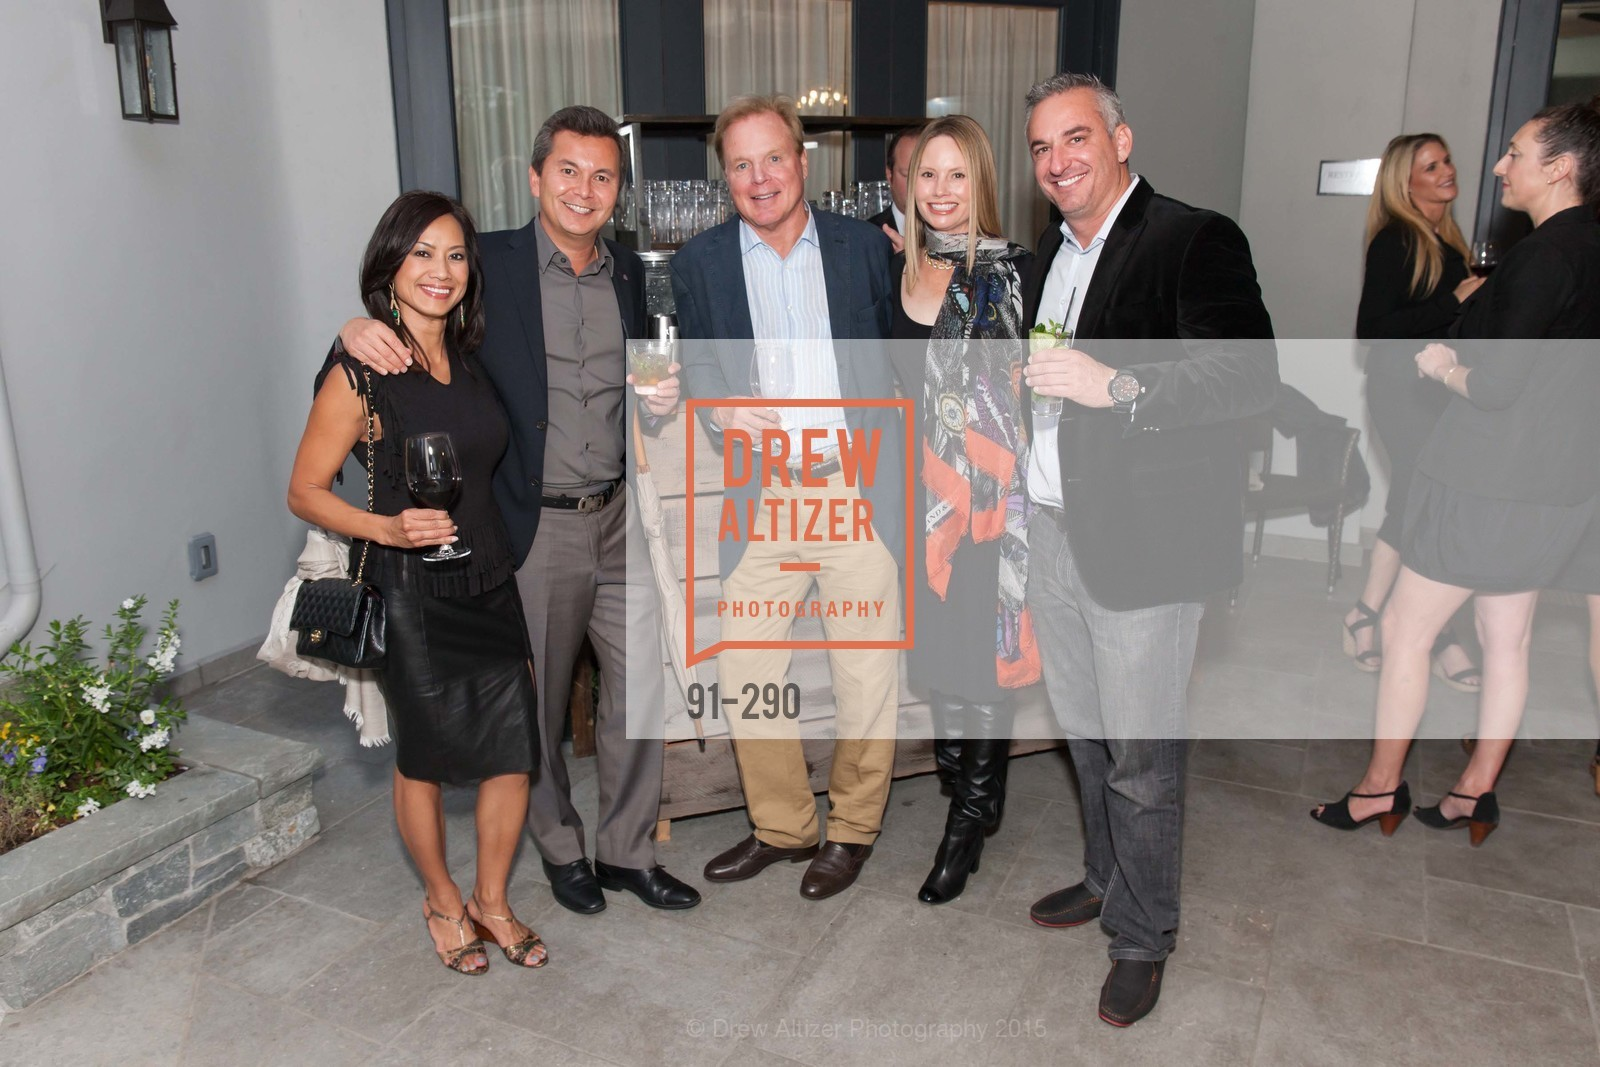 Thuy Bu, Michael Uytengsu, David Douglas, Nanette Lashay, Tim Martin, Photo #91-290